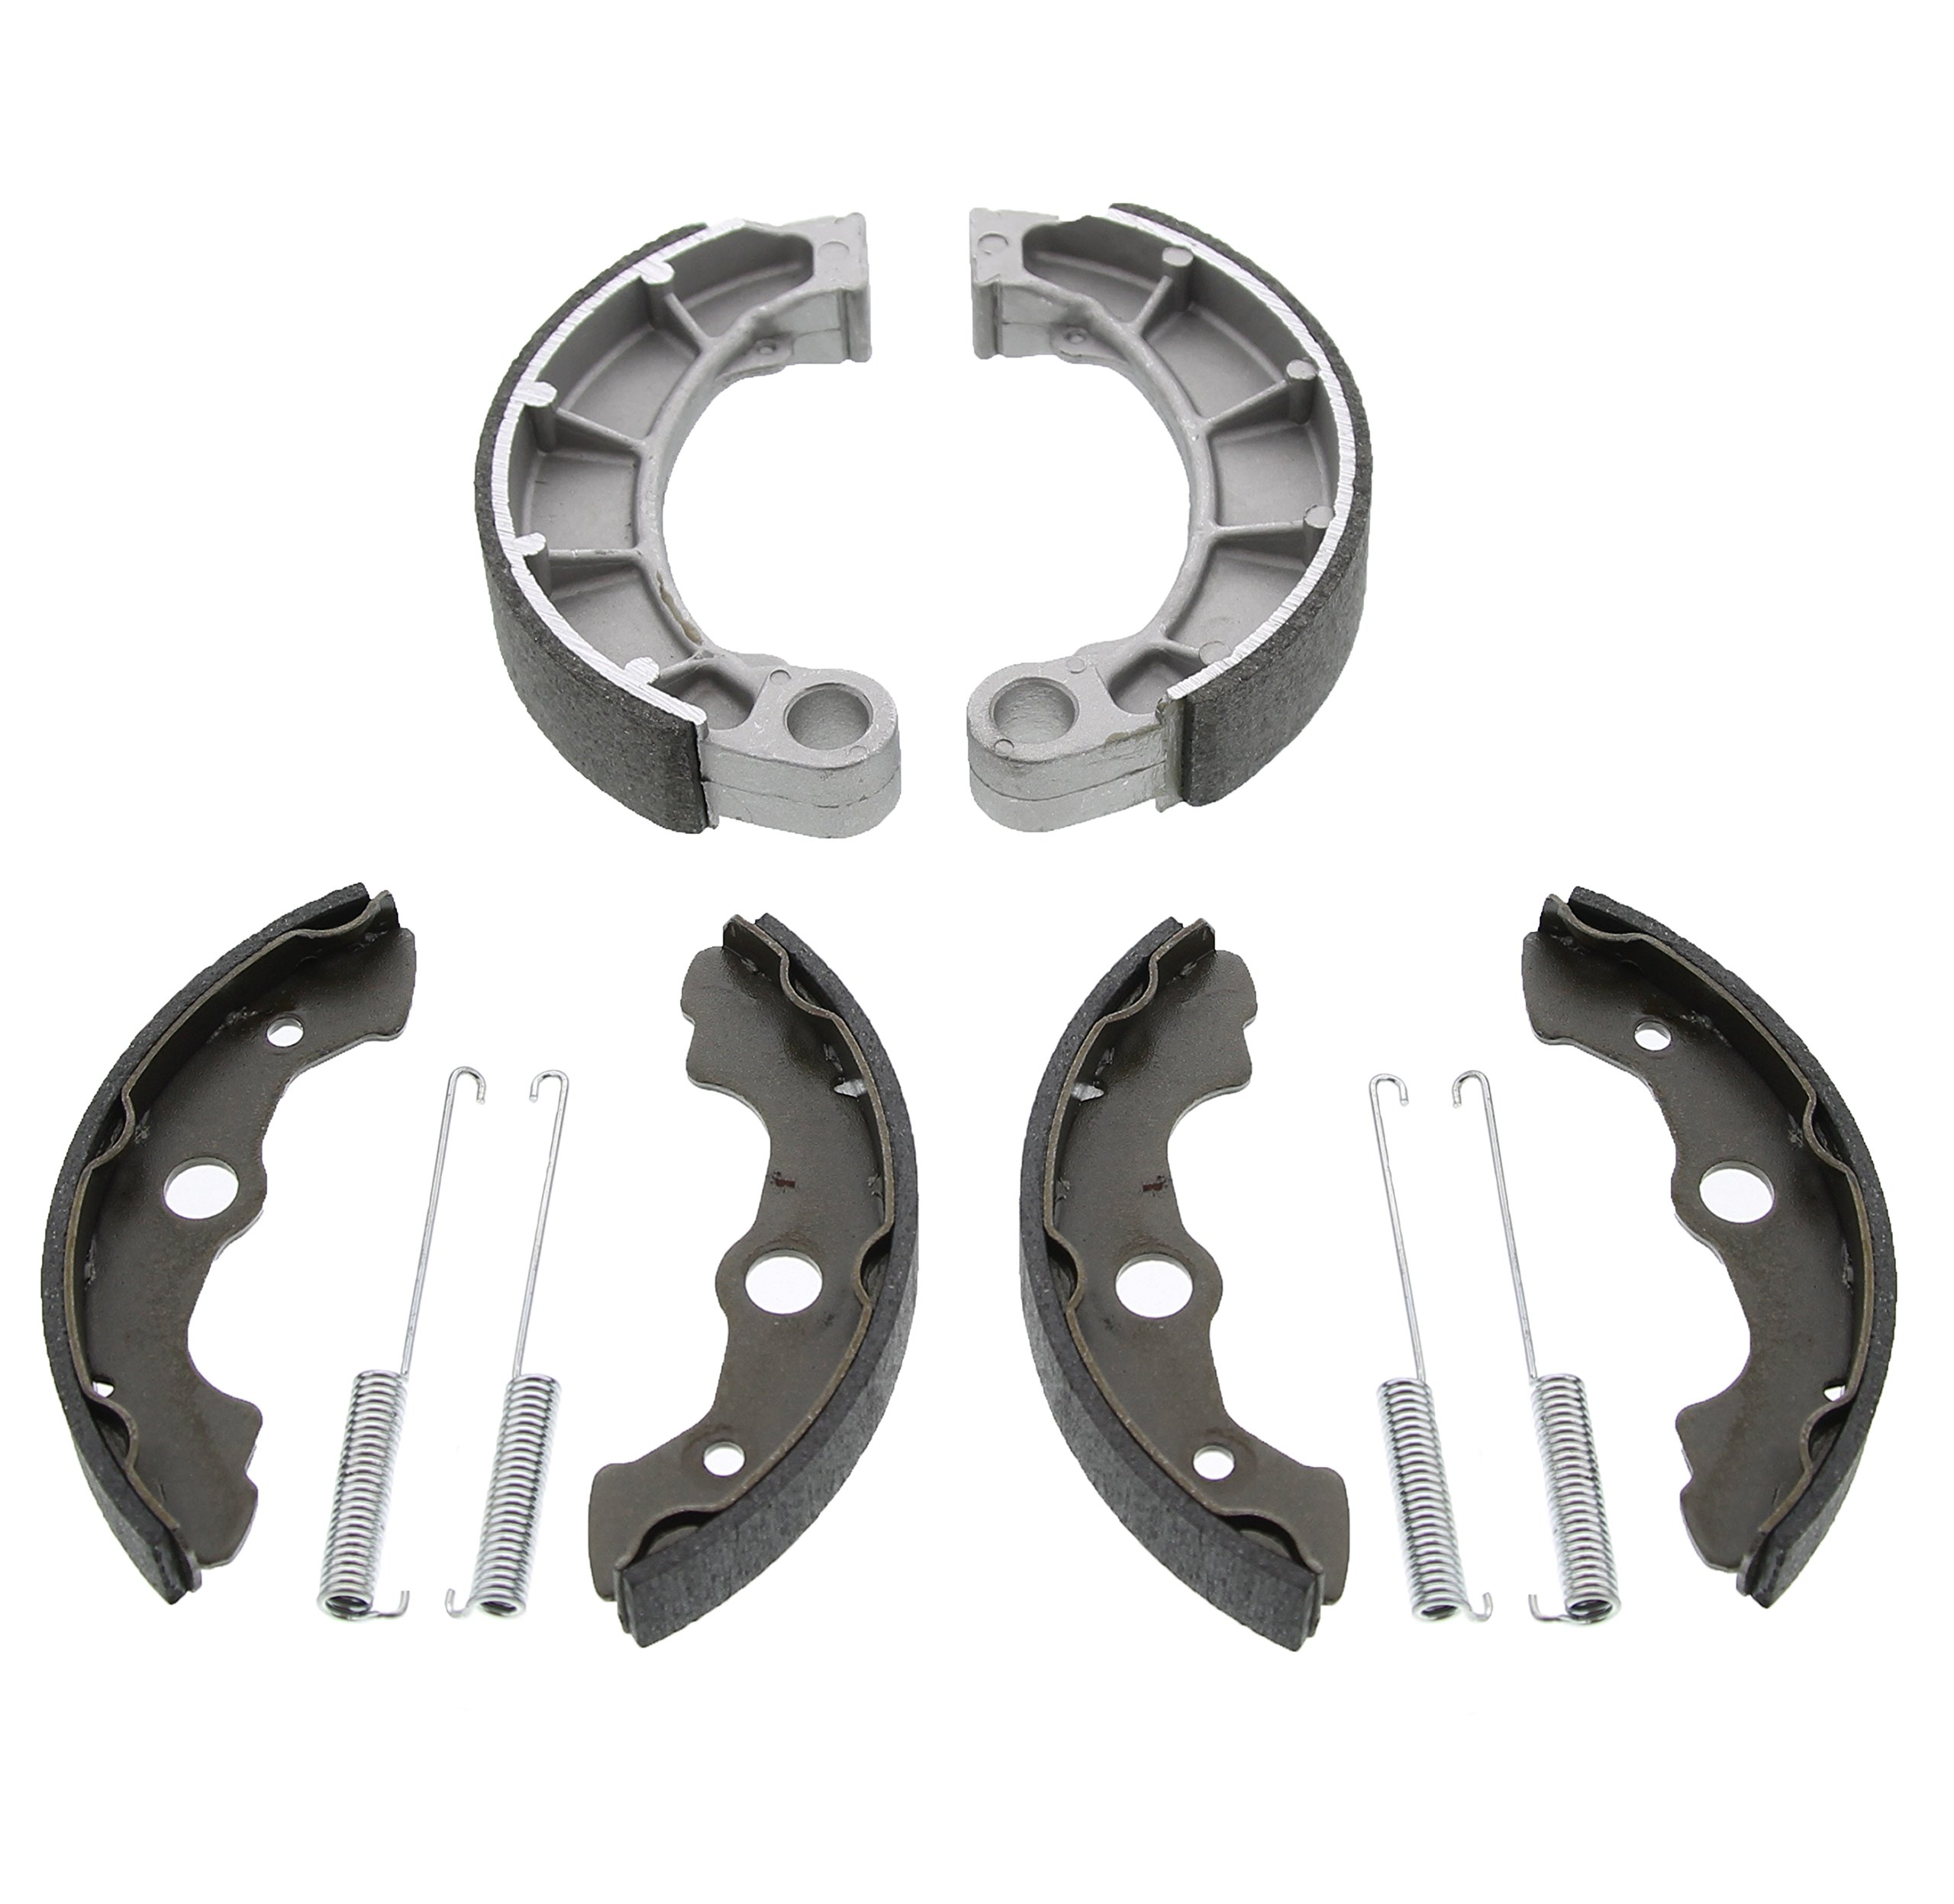 2004 Fits Honda Rancher 350 TRX350TE 2x4 ES TRX350 Front and Rear Brake Shoes by Race-Driven